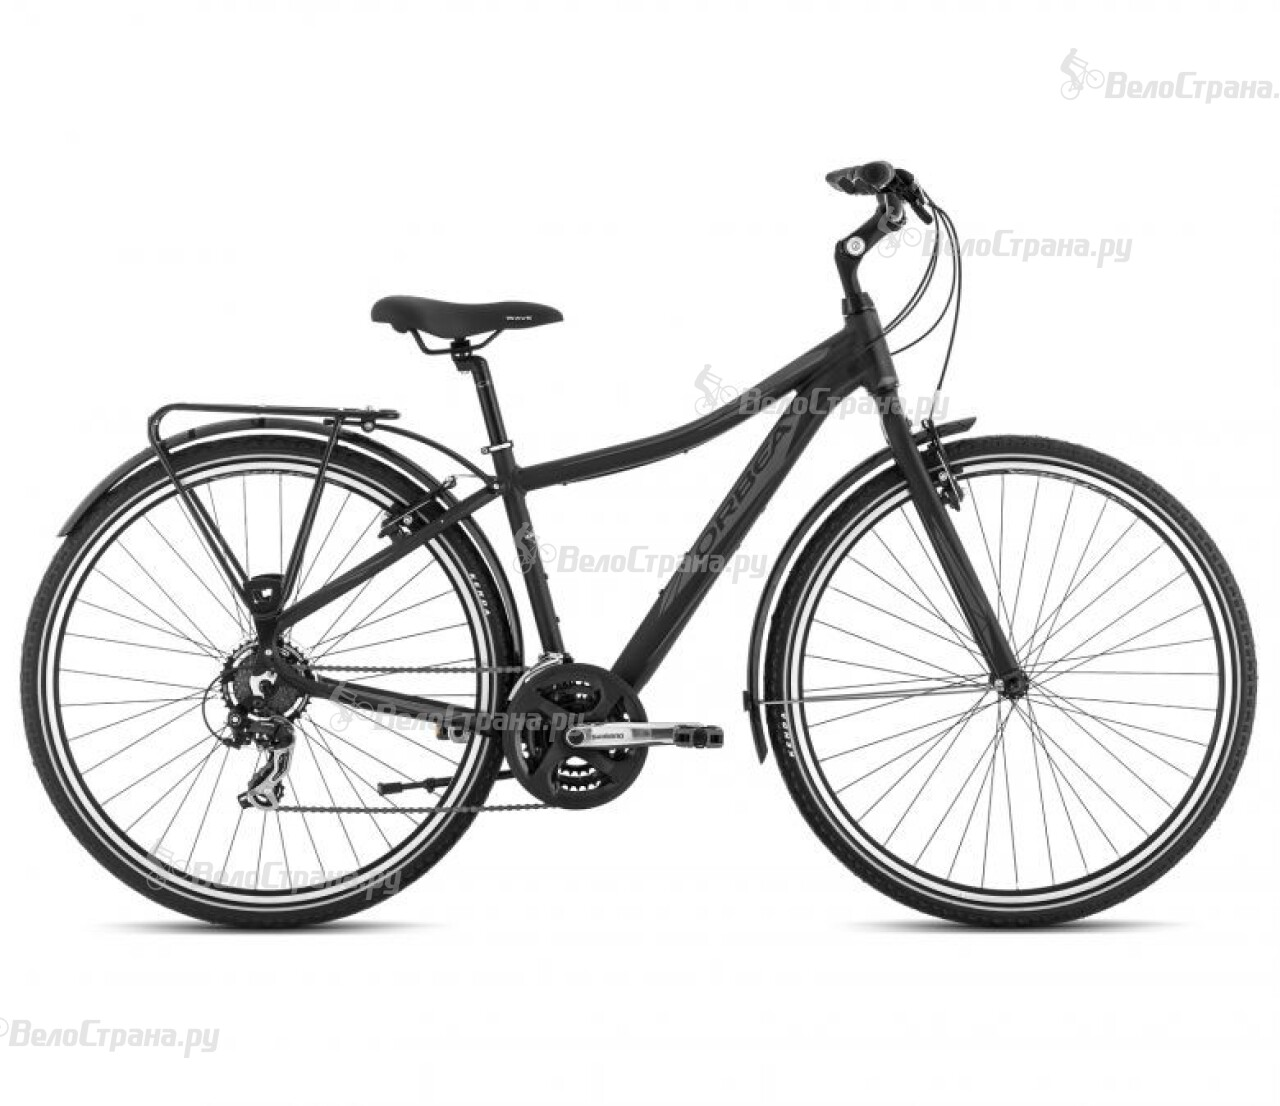 Велосипед Orbea Comfort 28 30 Entrance Eq (2014)